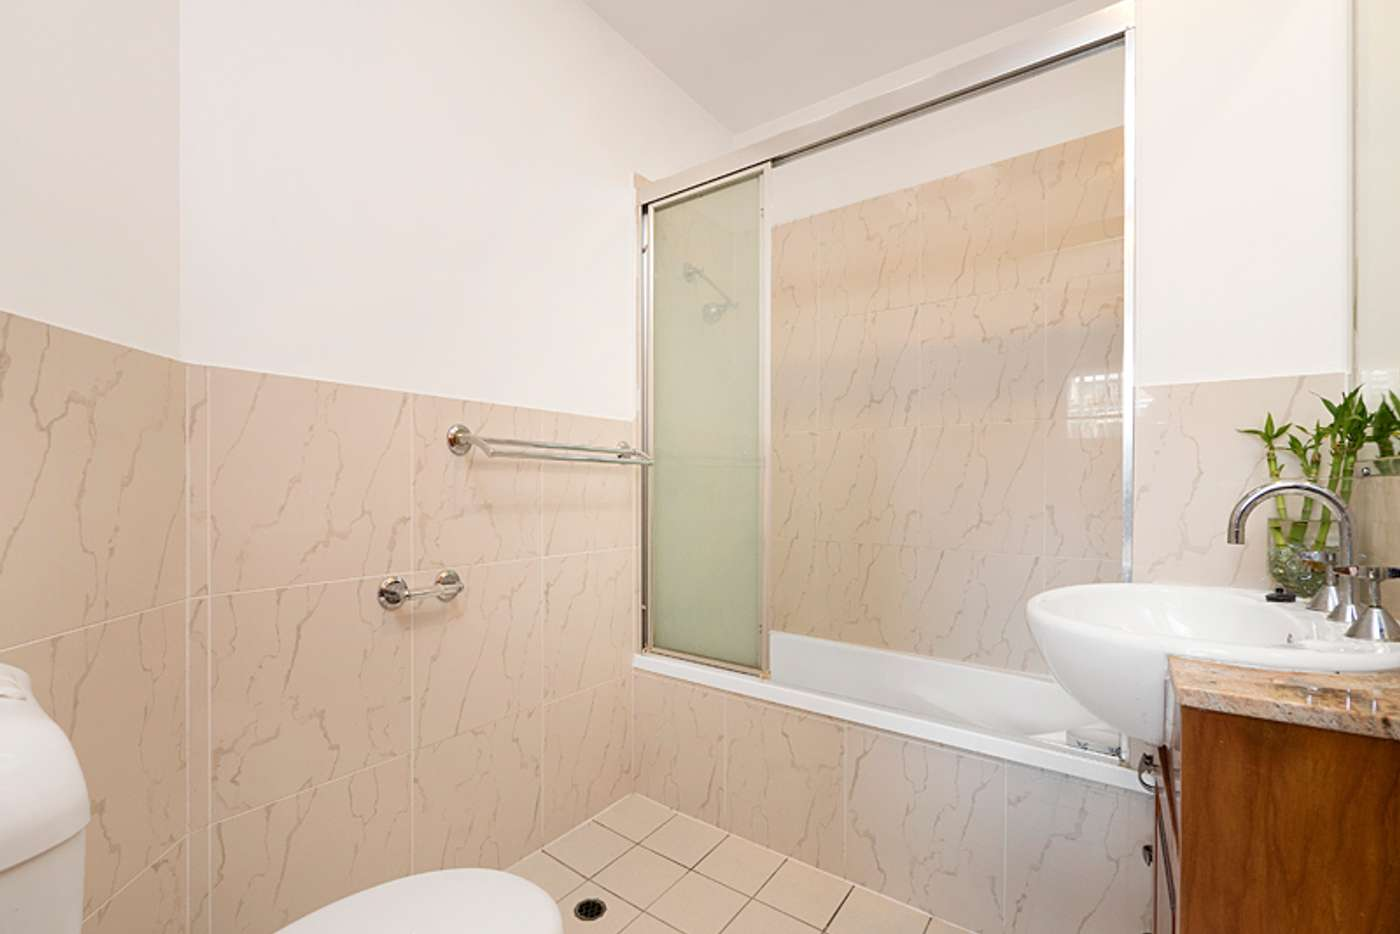 Seventh view of Homely townhouse listing, 1/11 Burt St, Auchenflower QLD 4066